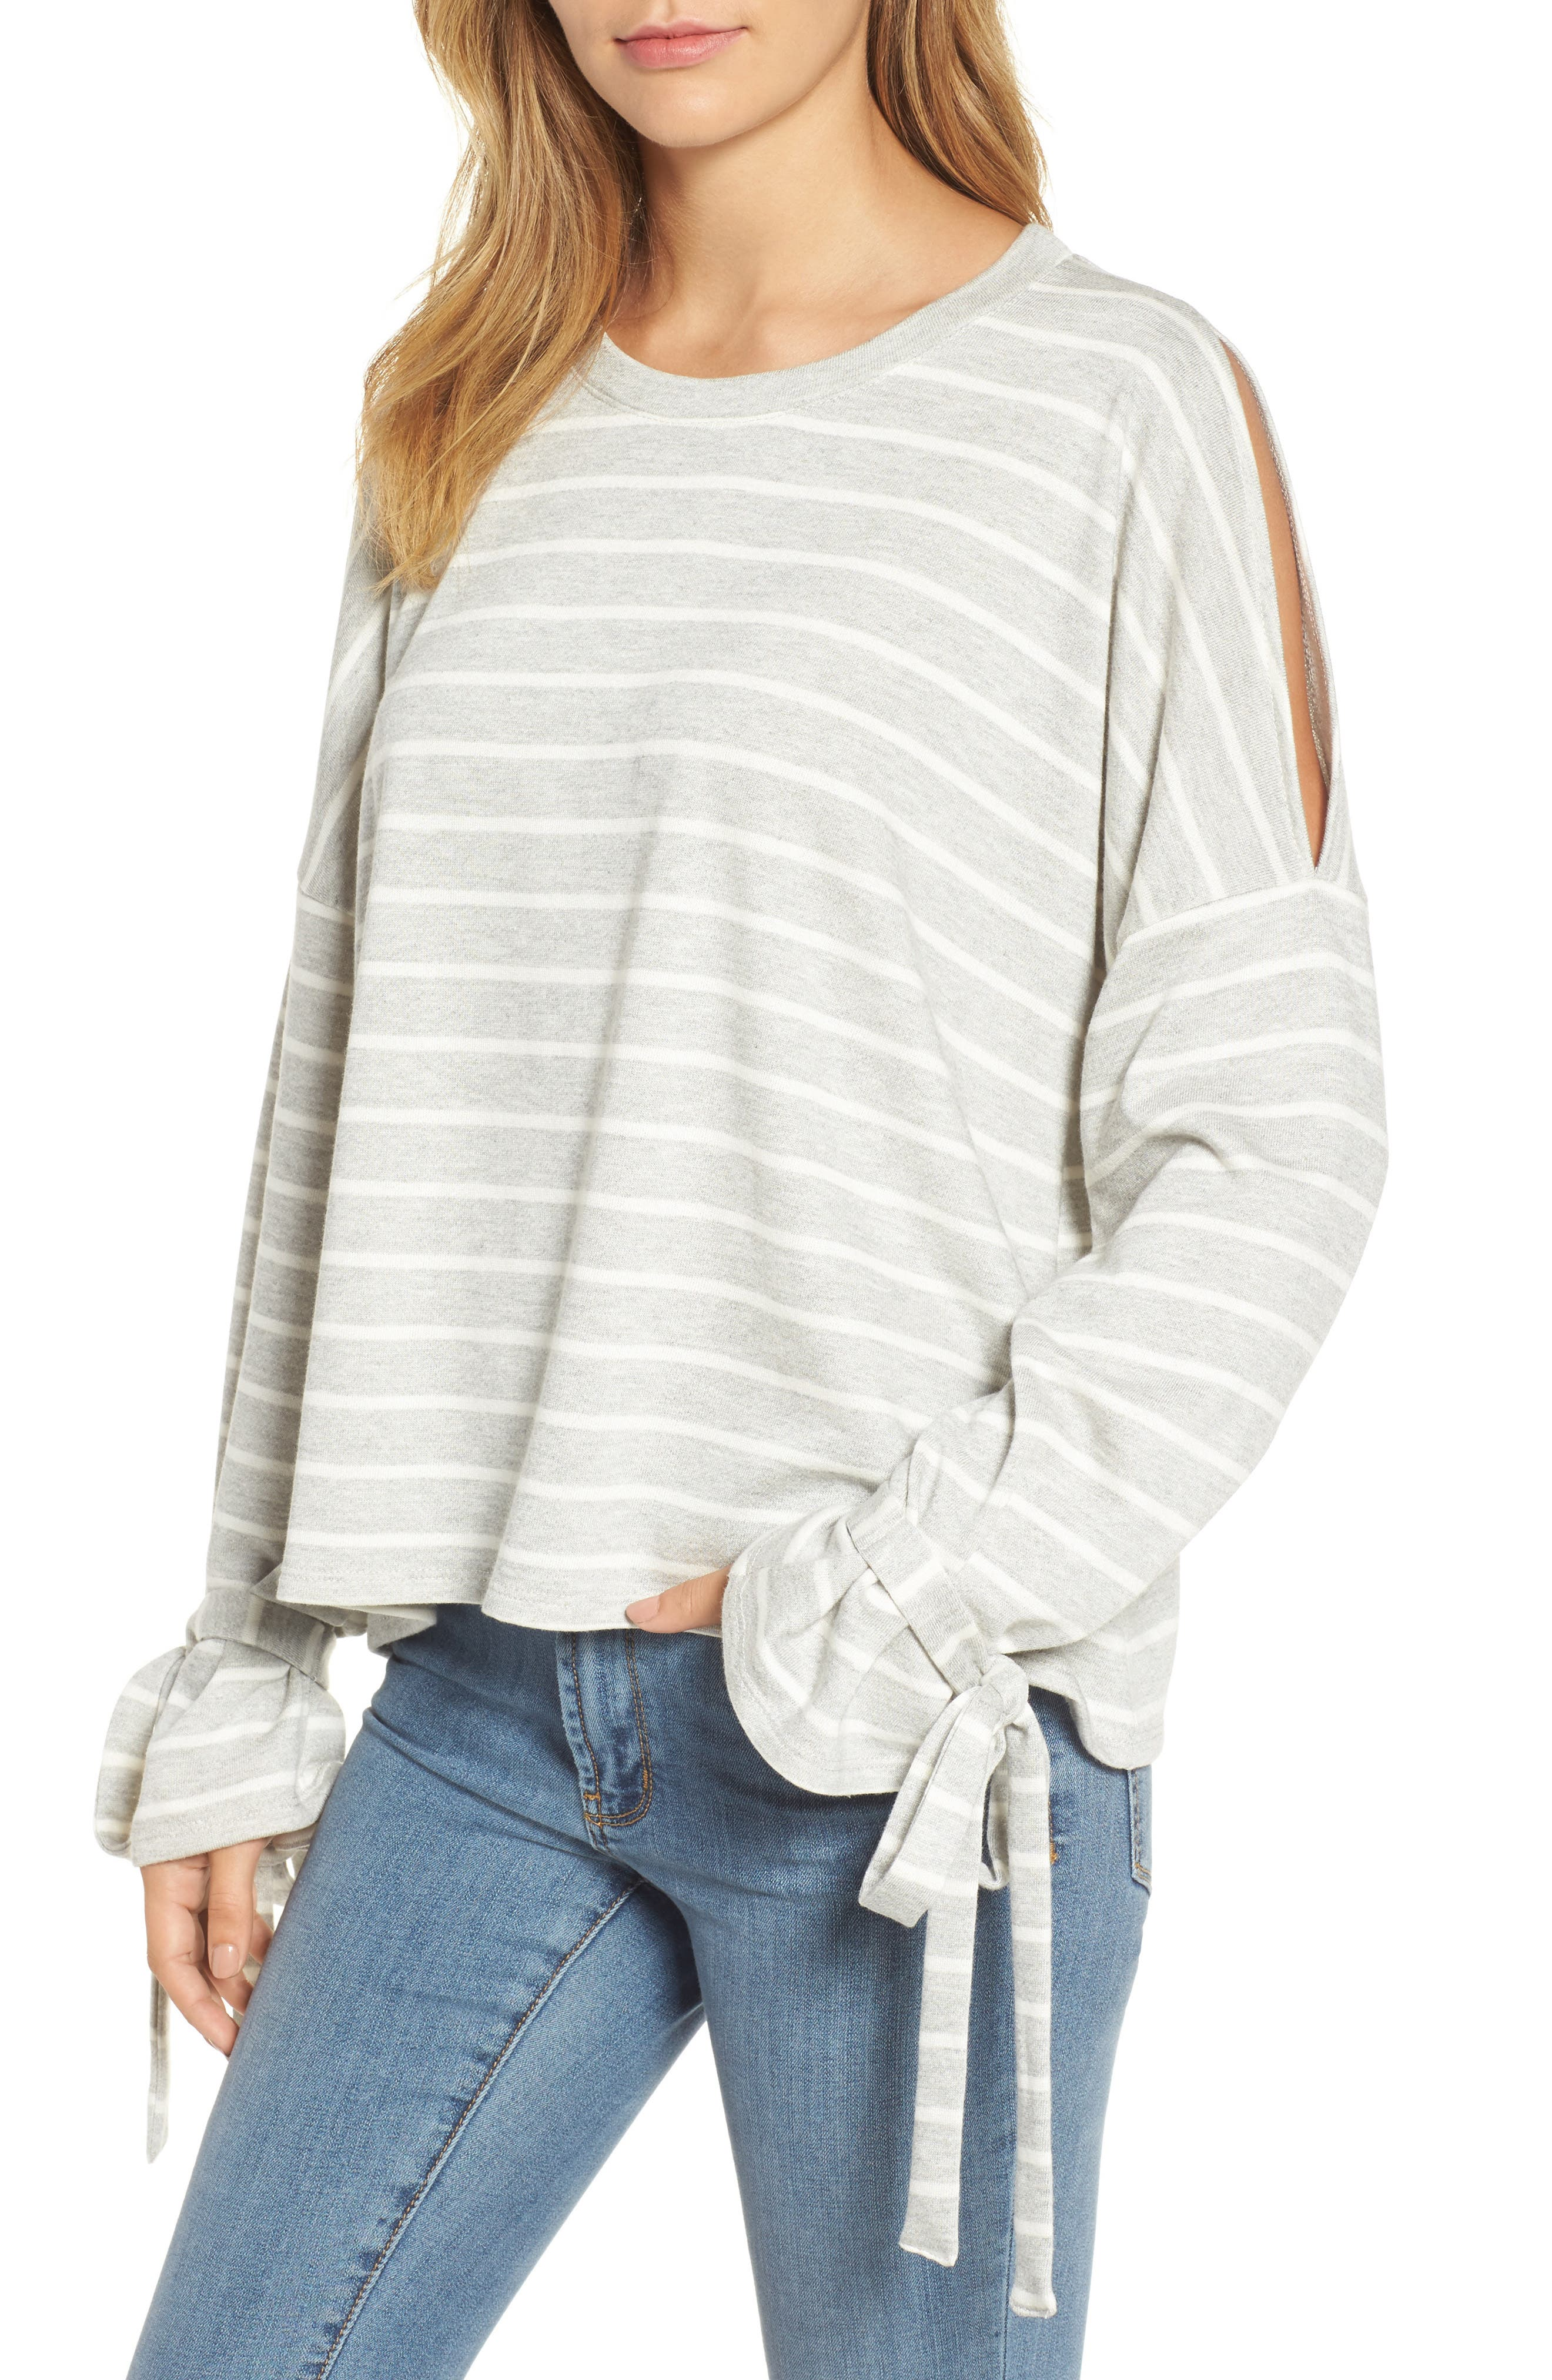 Calson<sup>®</sup> Cold Shoulder Tie Sleeve Tee,                         Main,                         color, 030